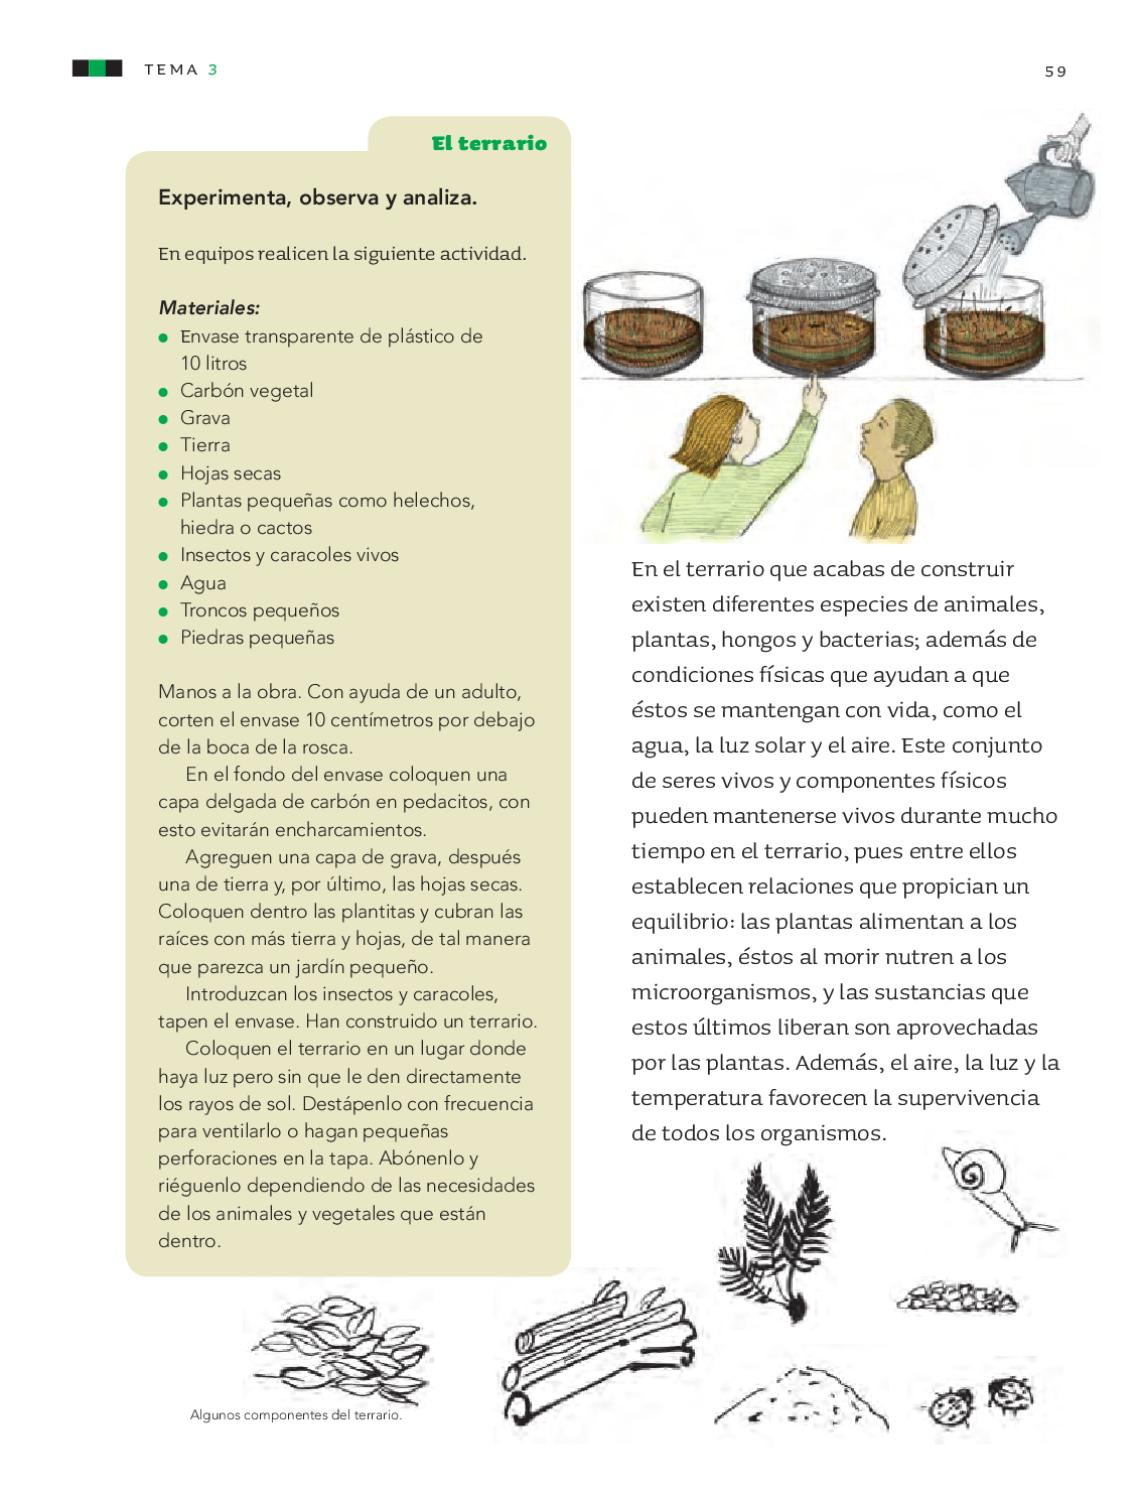 Libros Vivos Los Metales Ciencias Naturales 4to Grado By Rarámuri Issuu